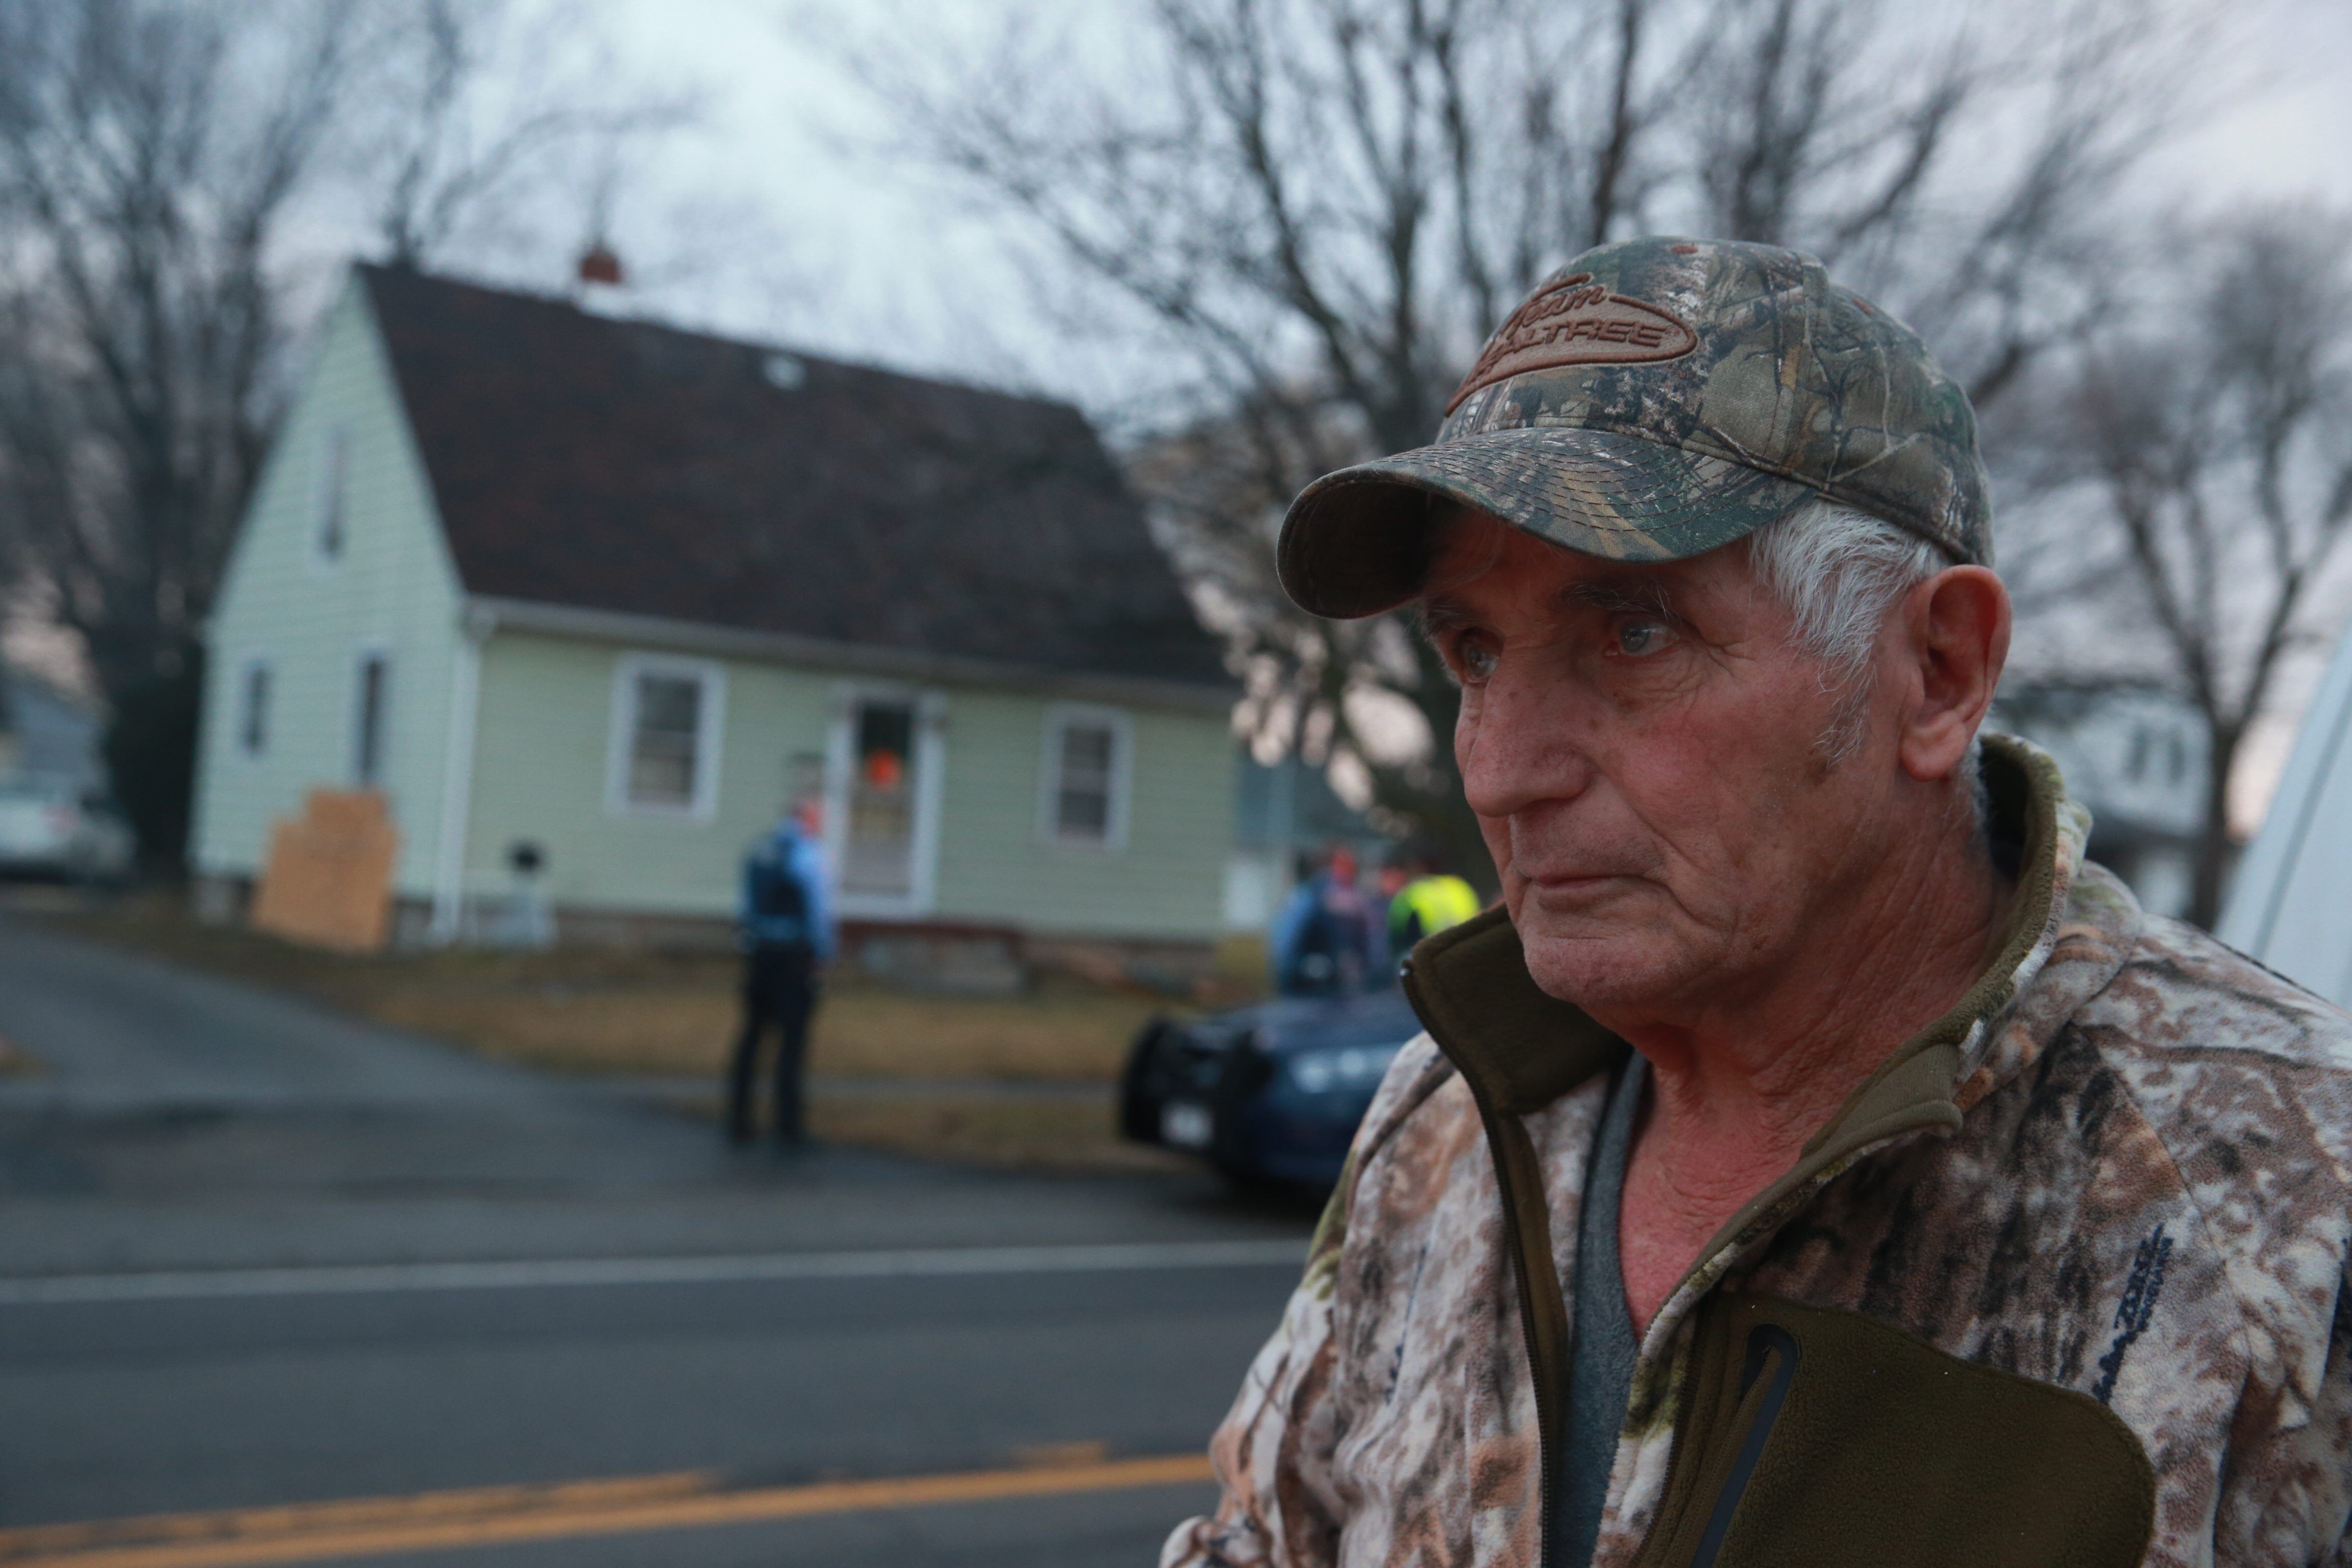 """""""I came in the living room and I saw a red light, and I thought the furnace blew out, but the side of the house blew. I called 911. They said get out of the house because the house was filling up with gas."""" – Gerald Ruhland, homeowner"""